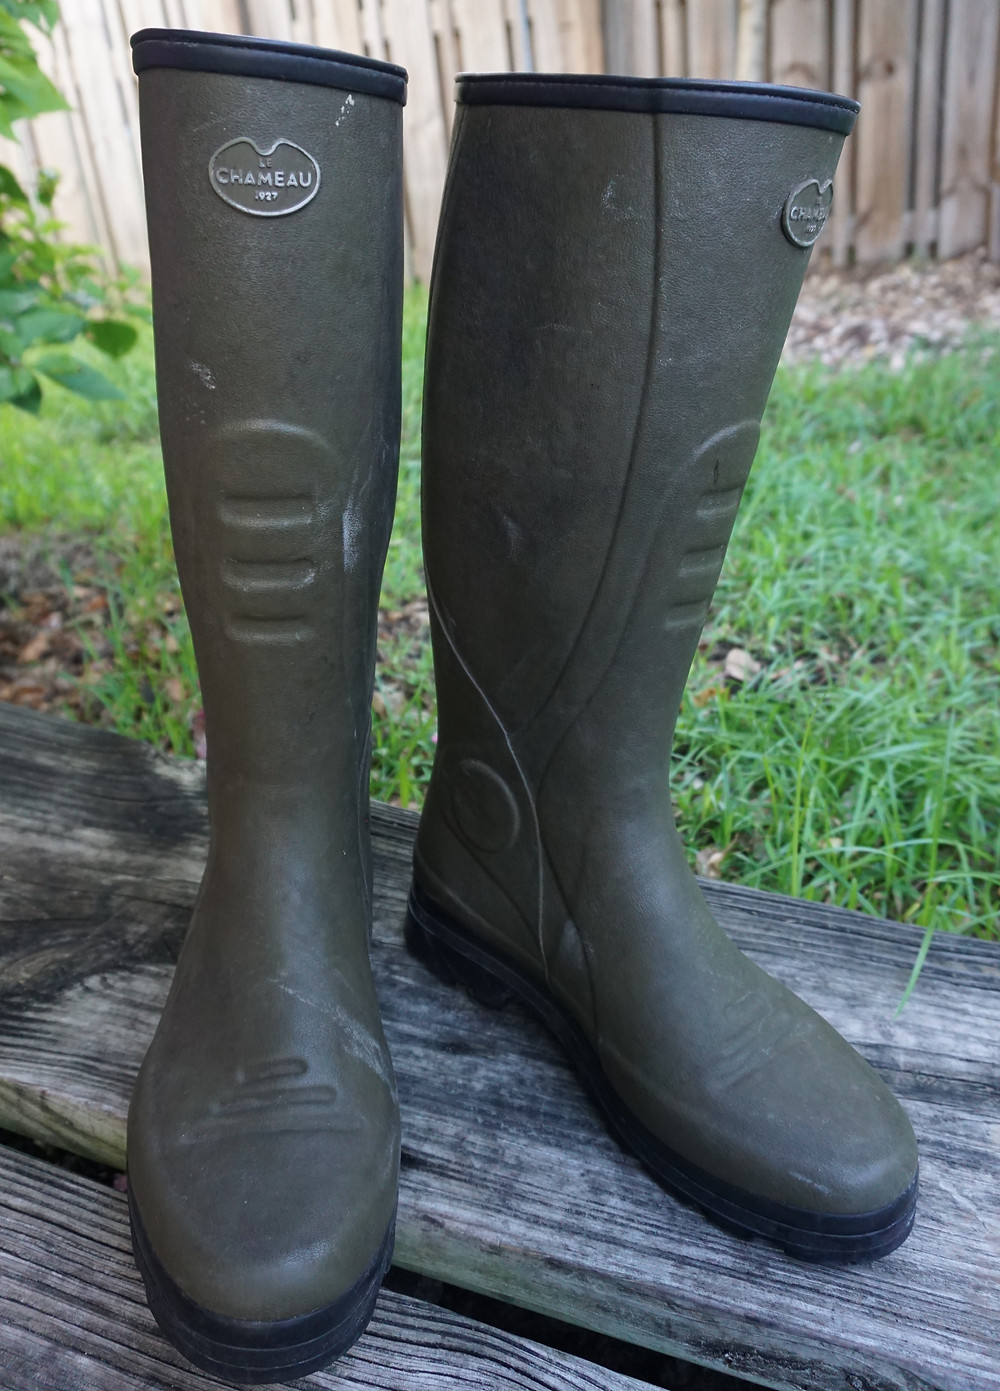 Tall rubber boots like Le Chameau are a must for Snipe hunting